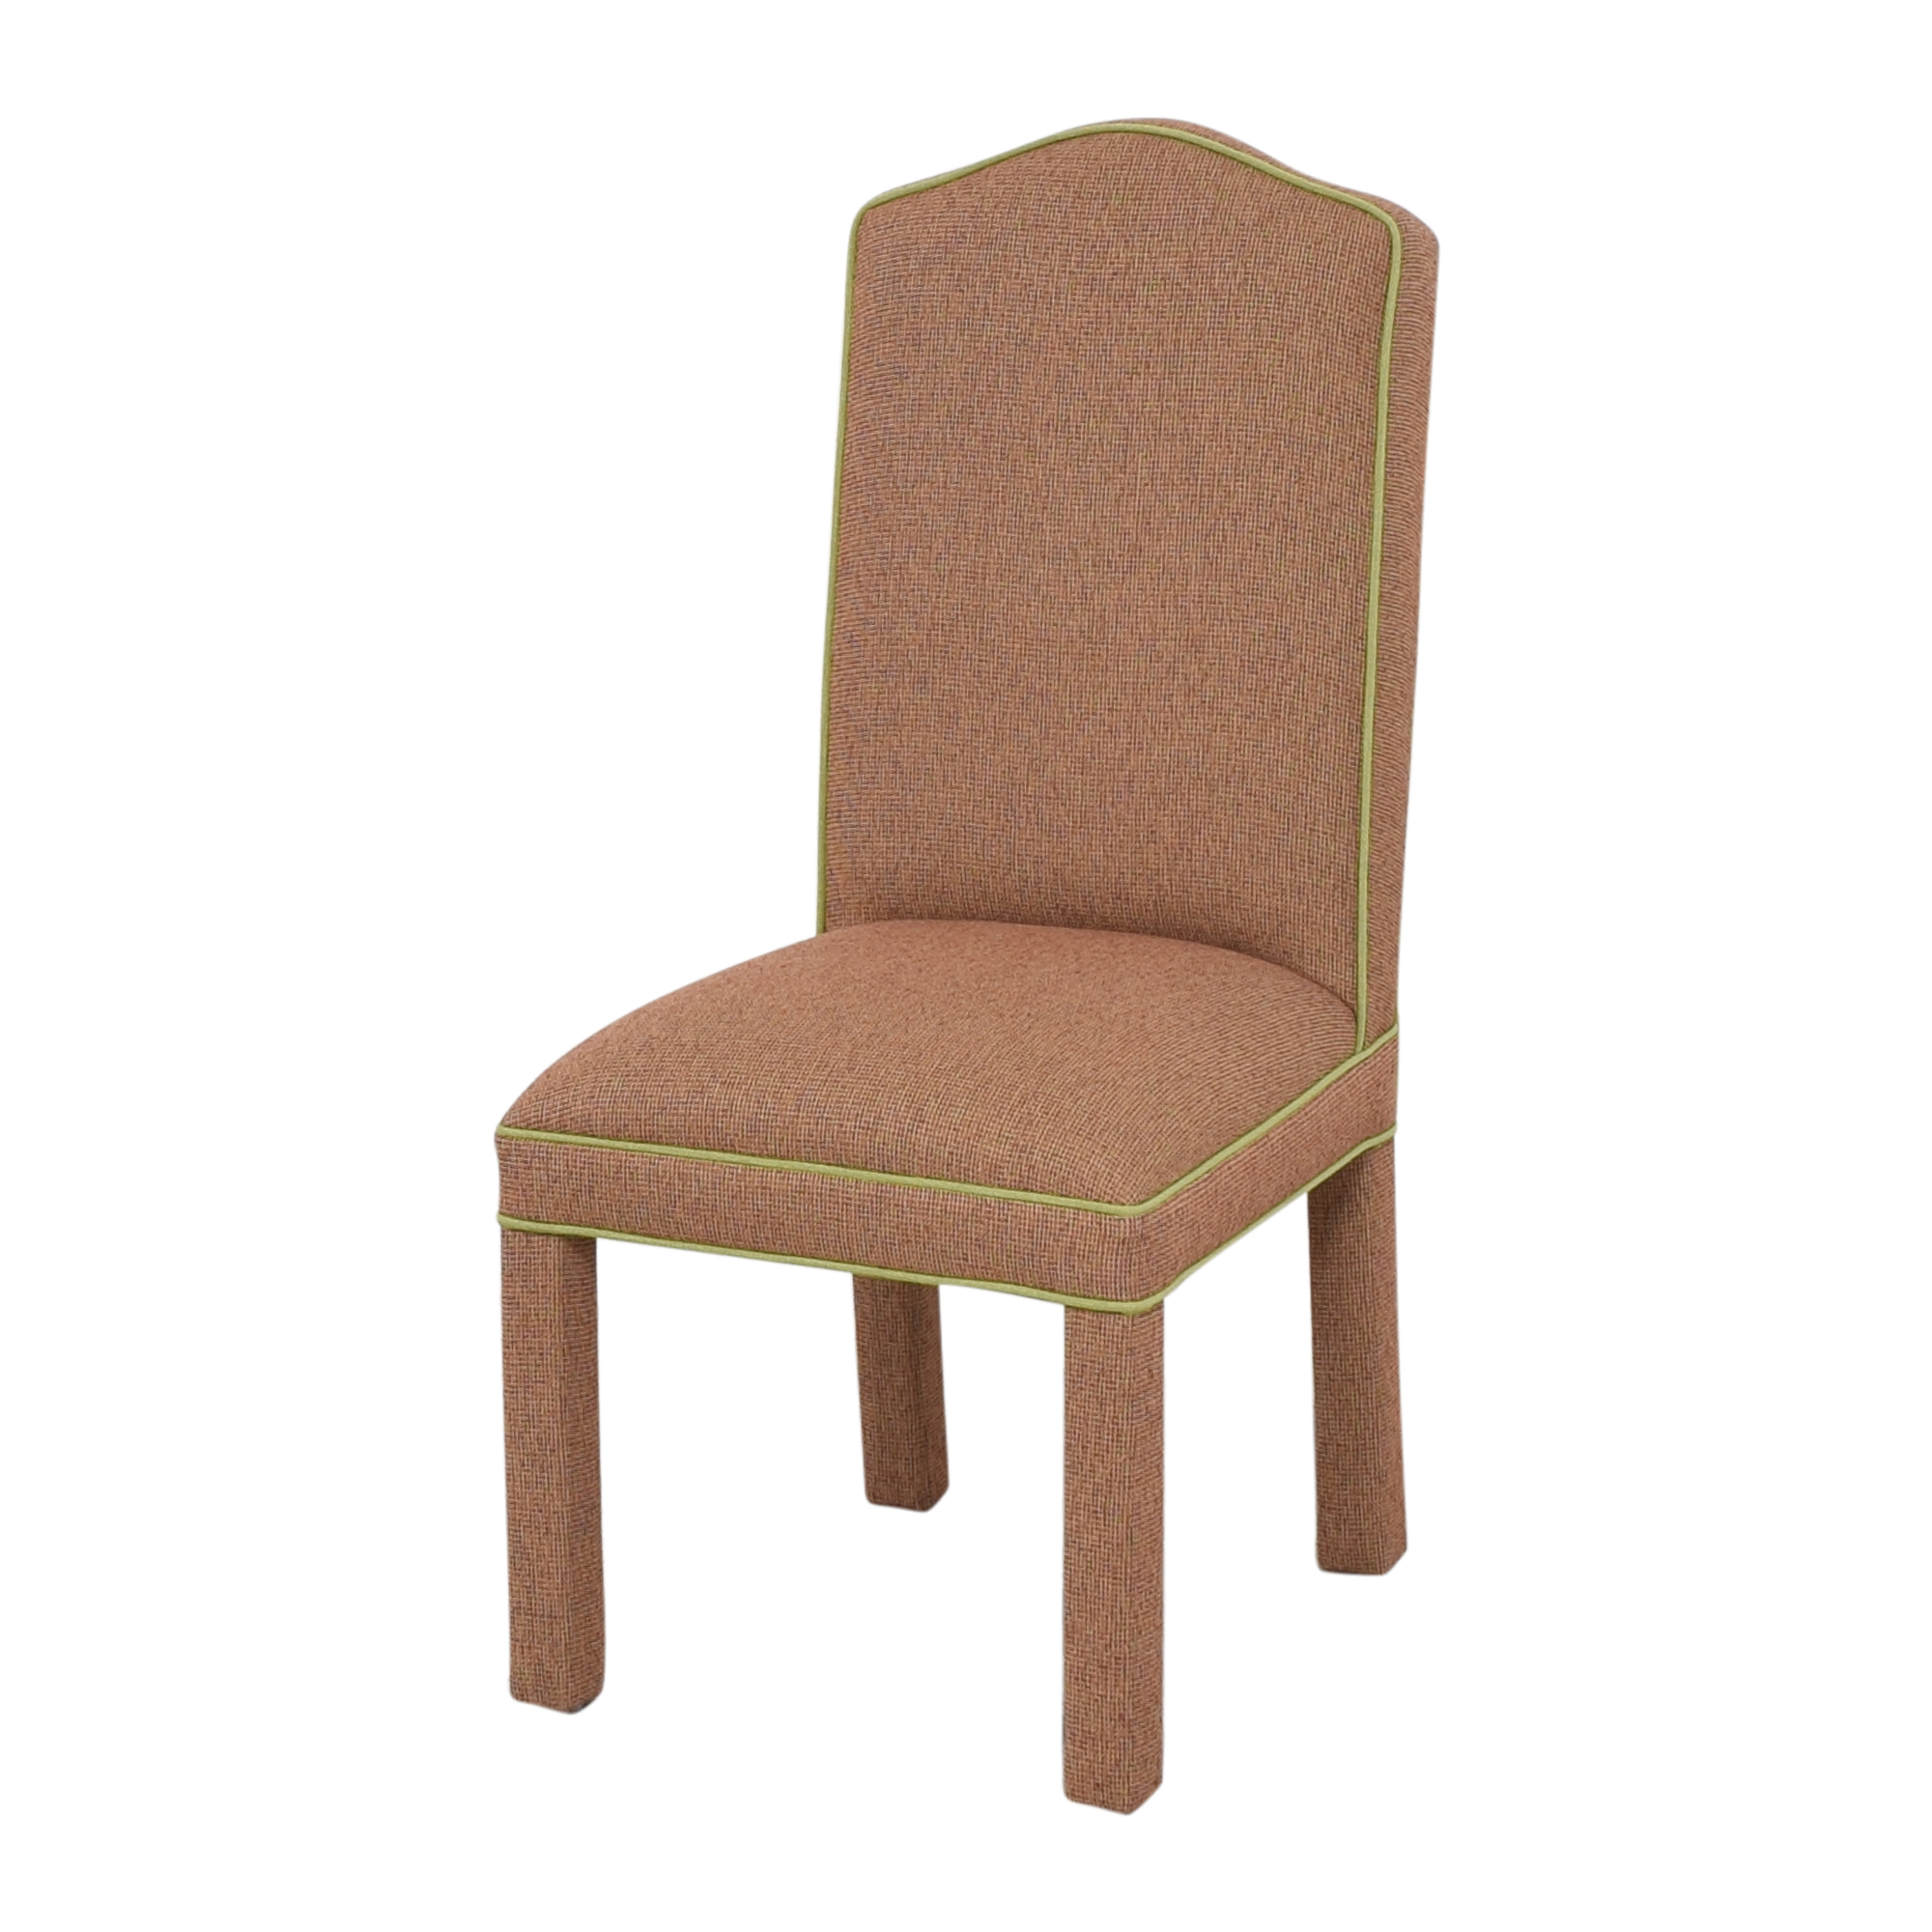 Custom Upholstered High Back Dining Chairs